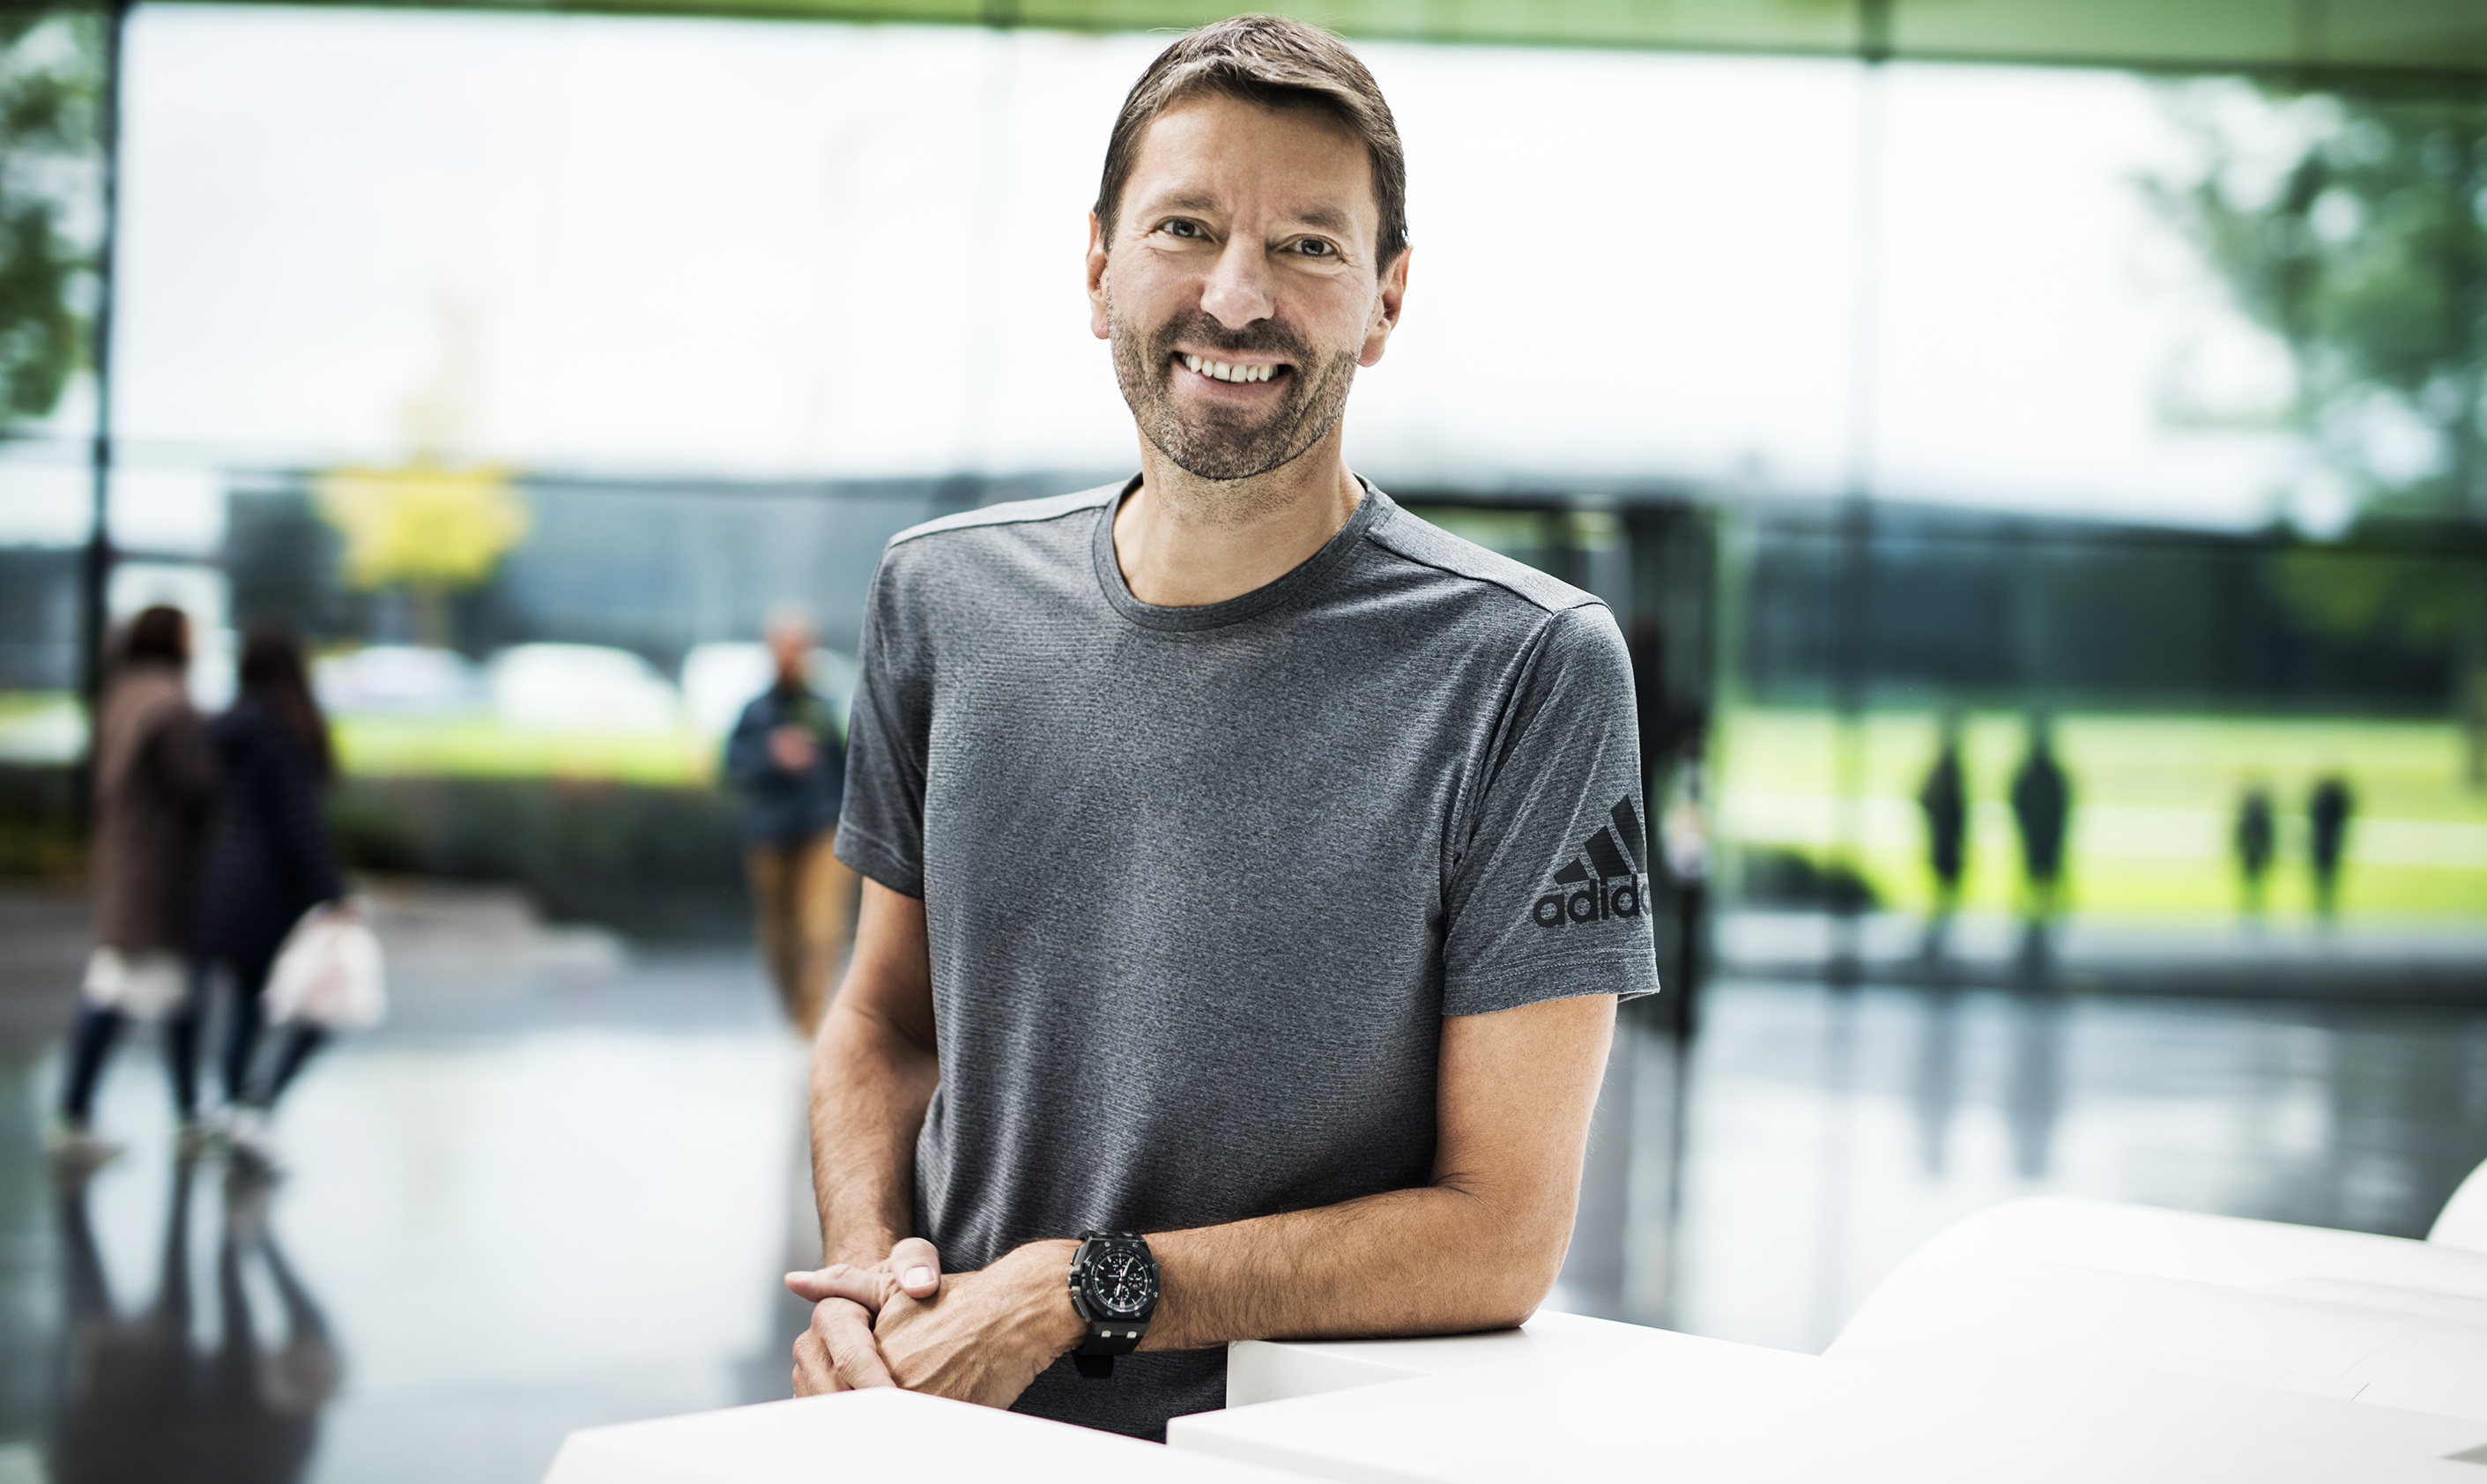 Rorsted Kasper CEO Adidas Group